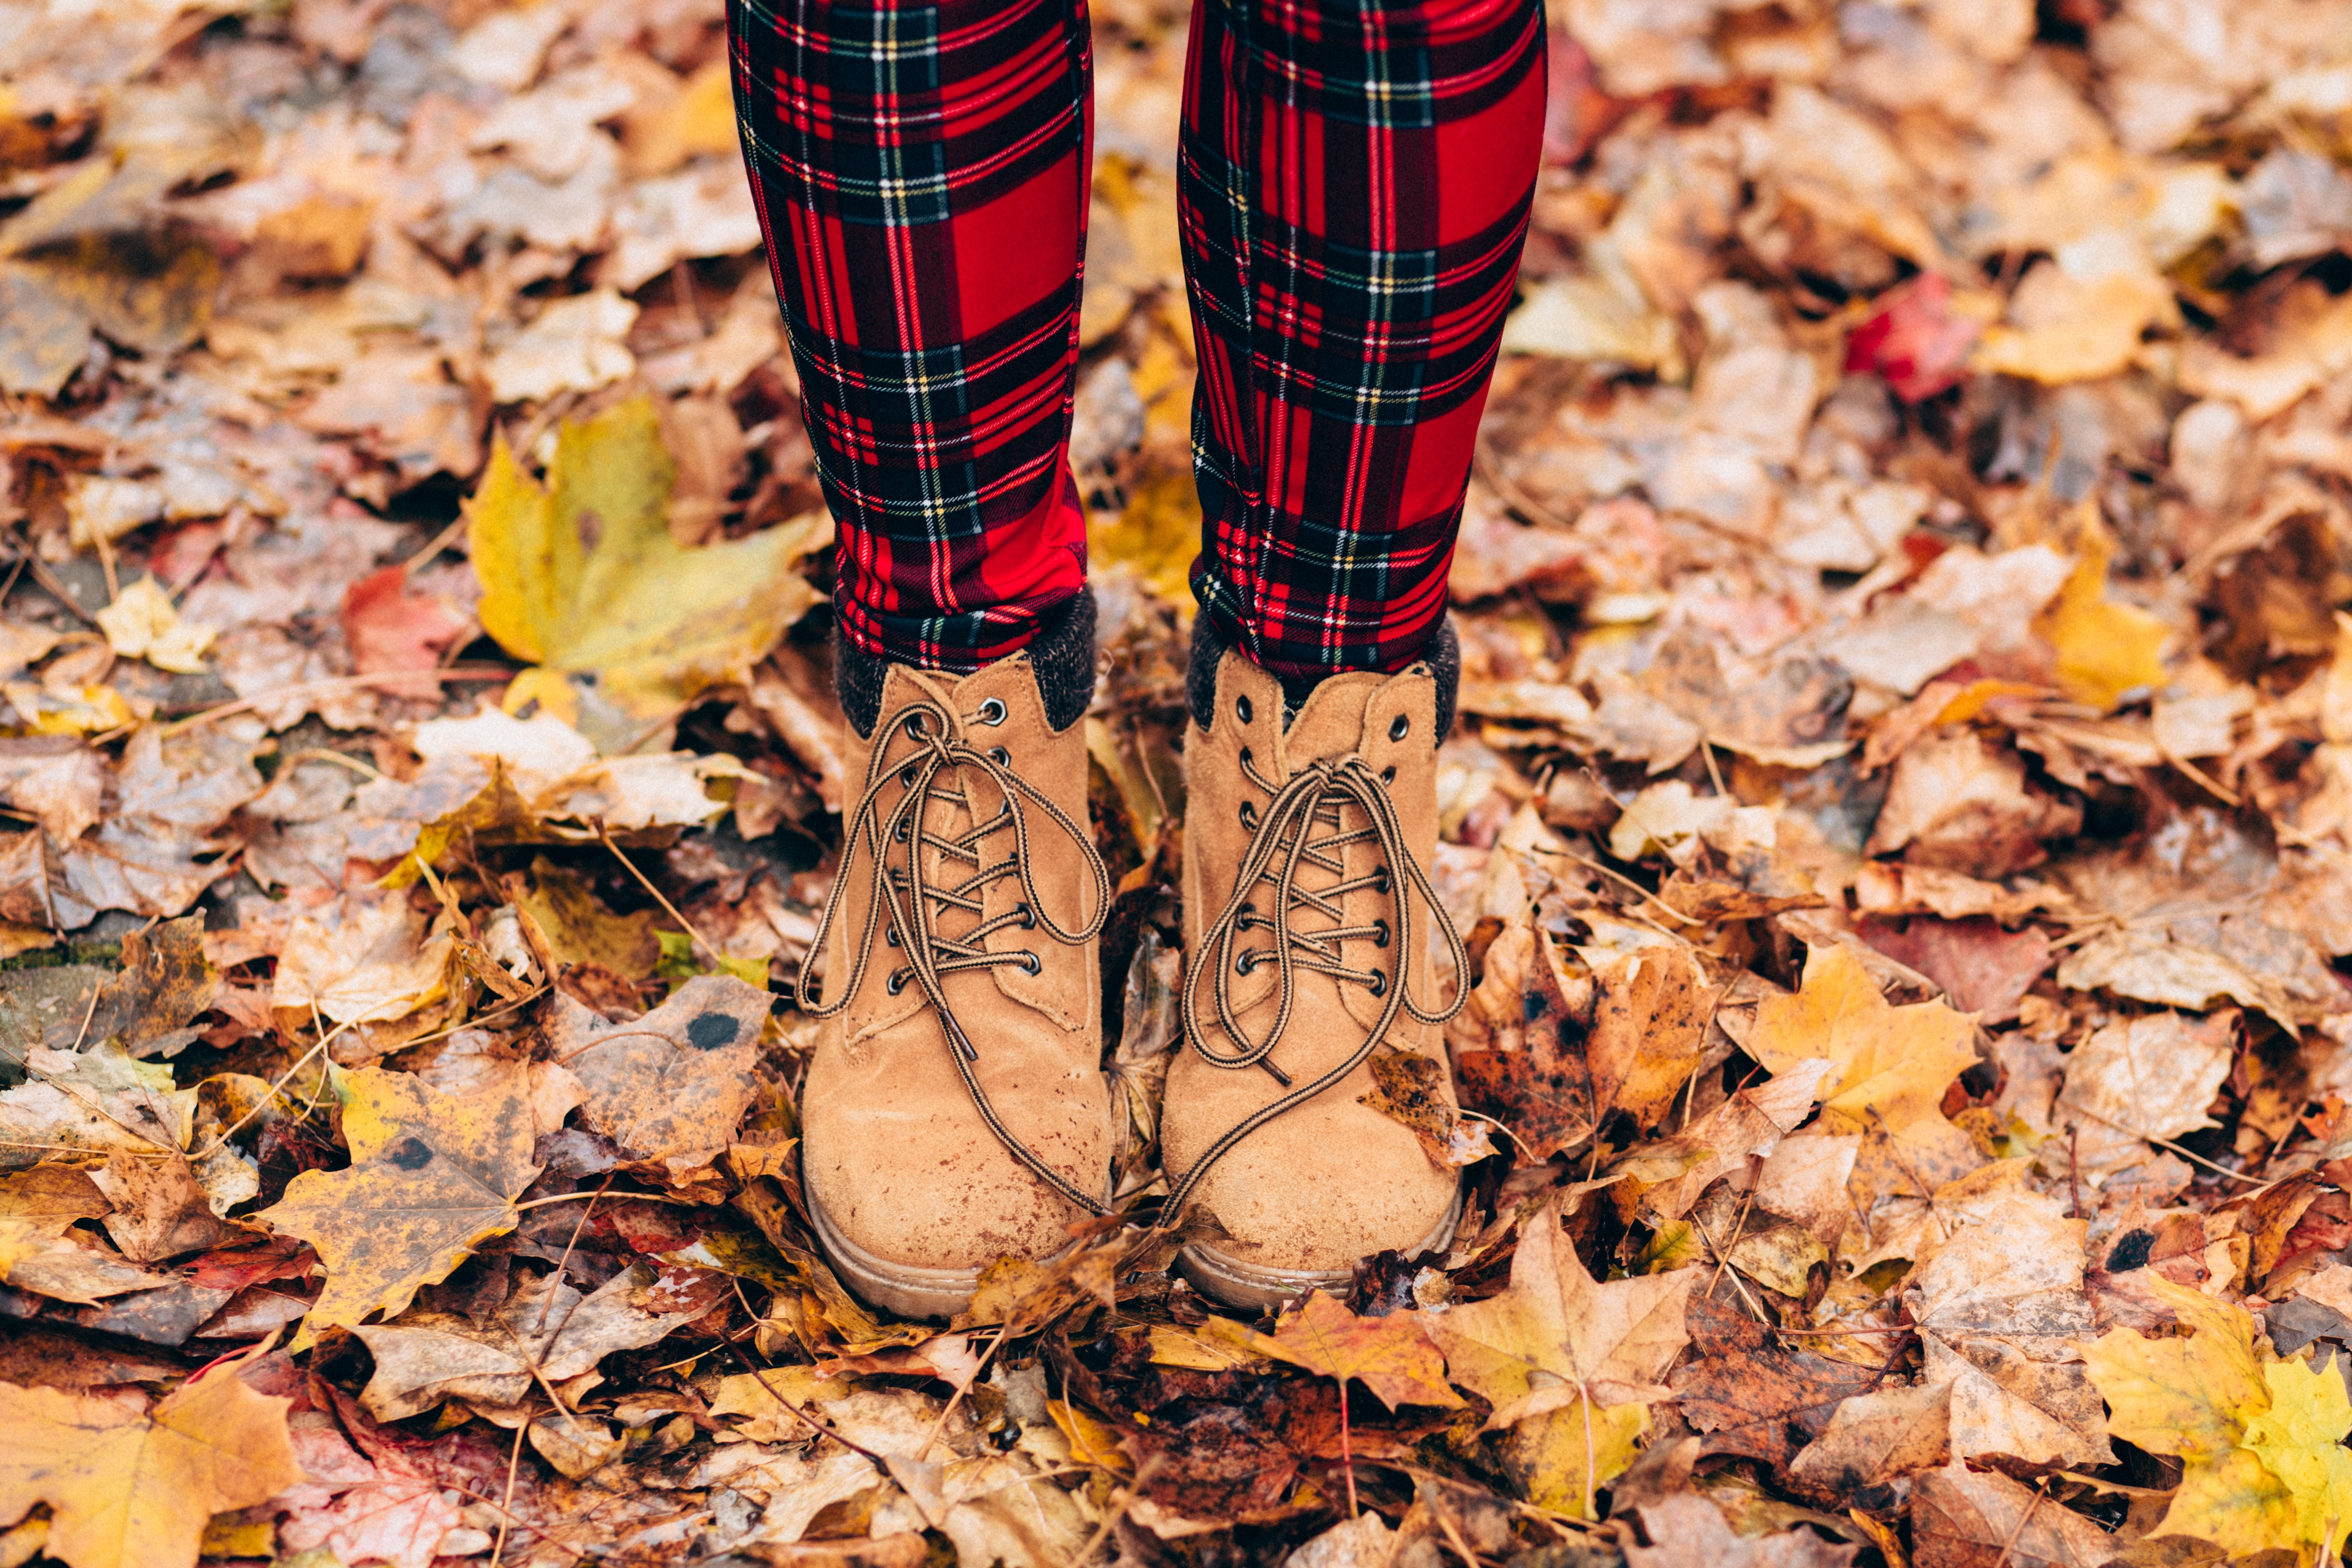 A person wearing plaid pants and boots stands on fall leaves